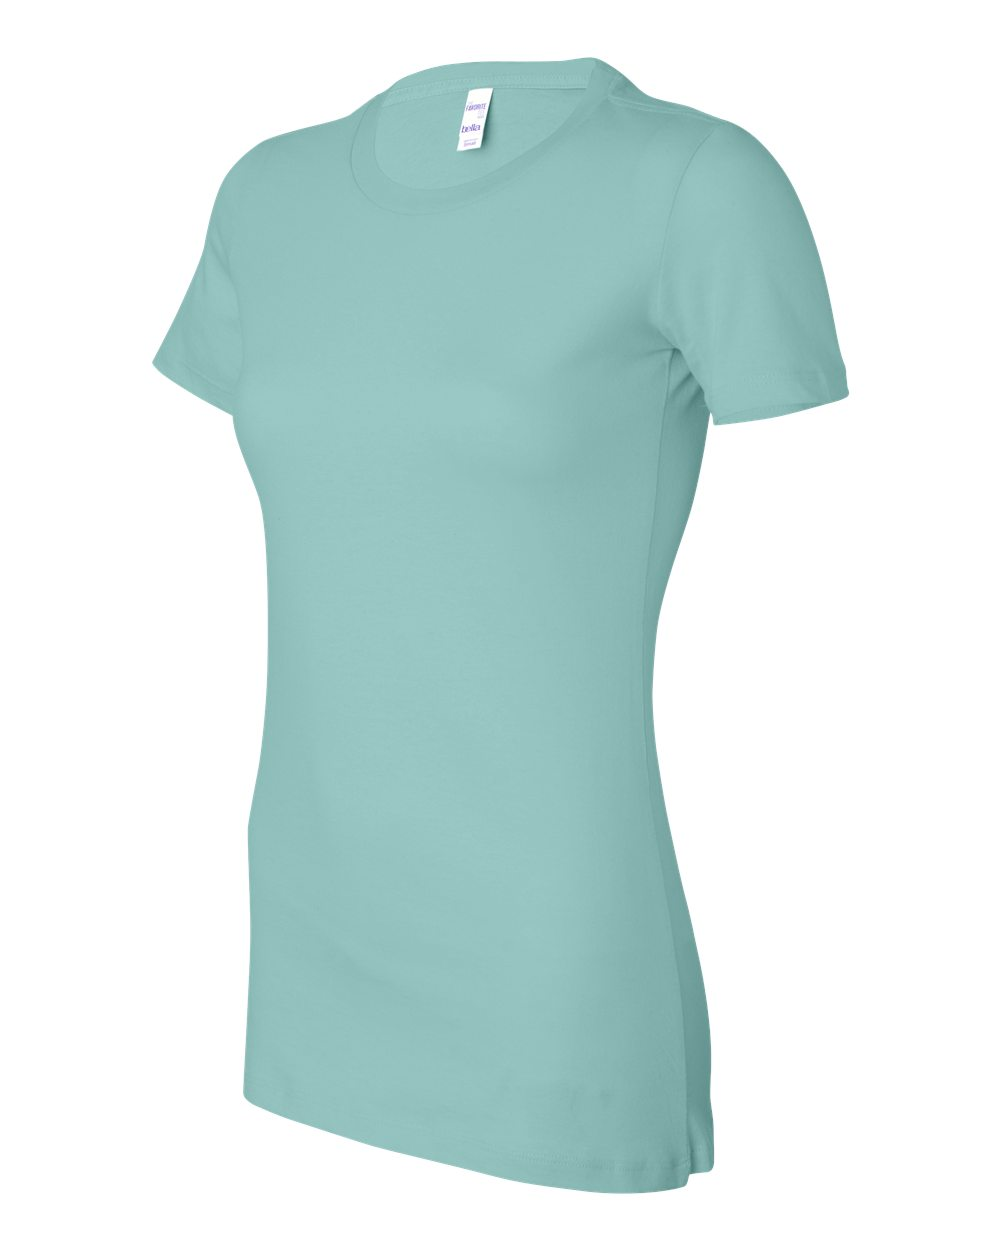 Bella-Canvas-Womens-The-Favorite-T-Shirt-6004-Size-S-2XL thumbnail 137